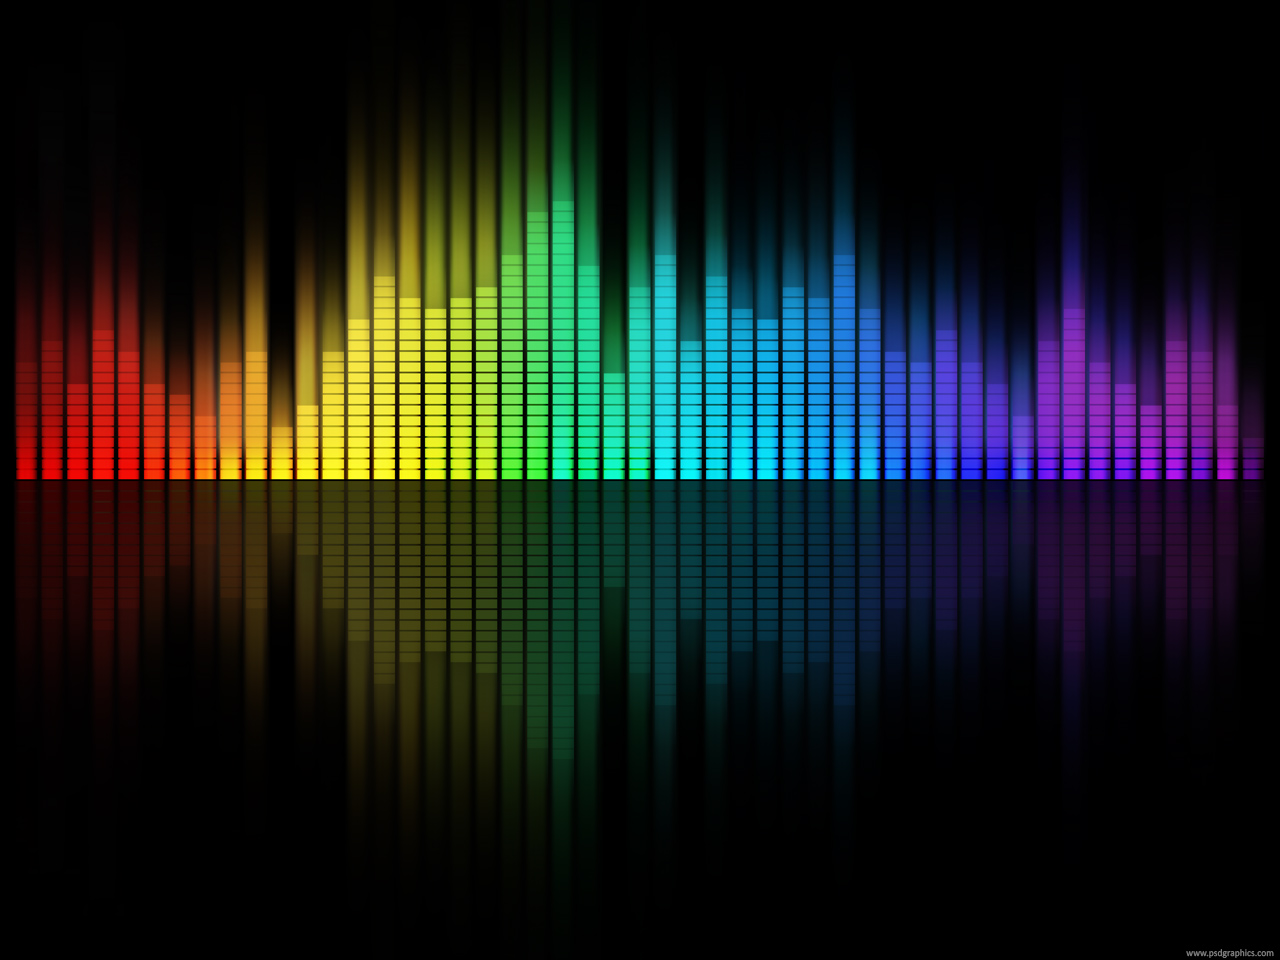 Medium size preview 1280x960px Music equalizer background 1280x960